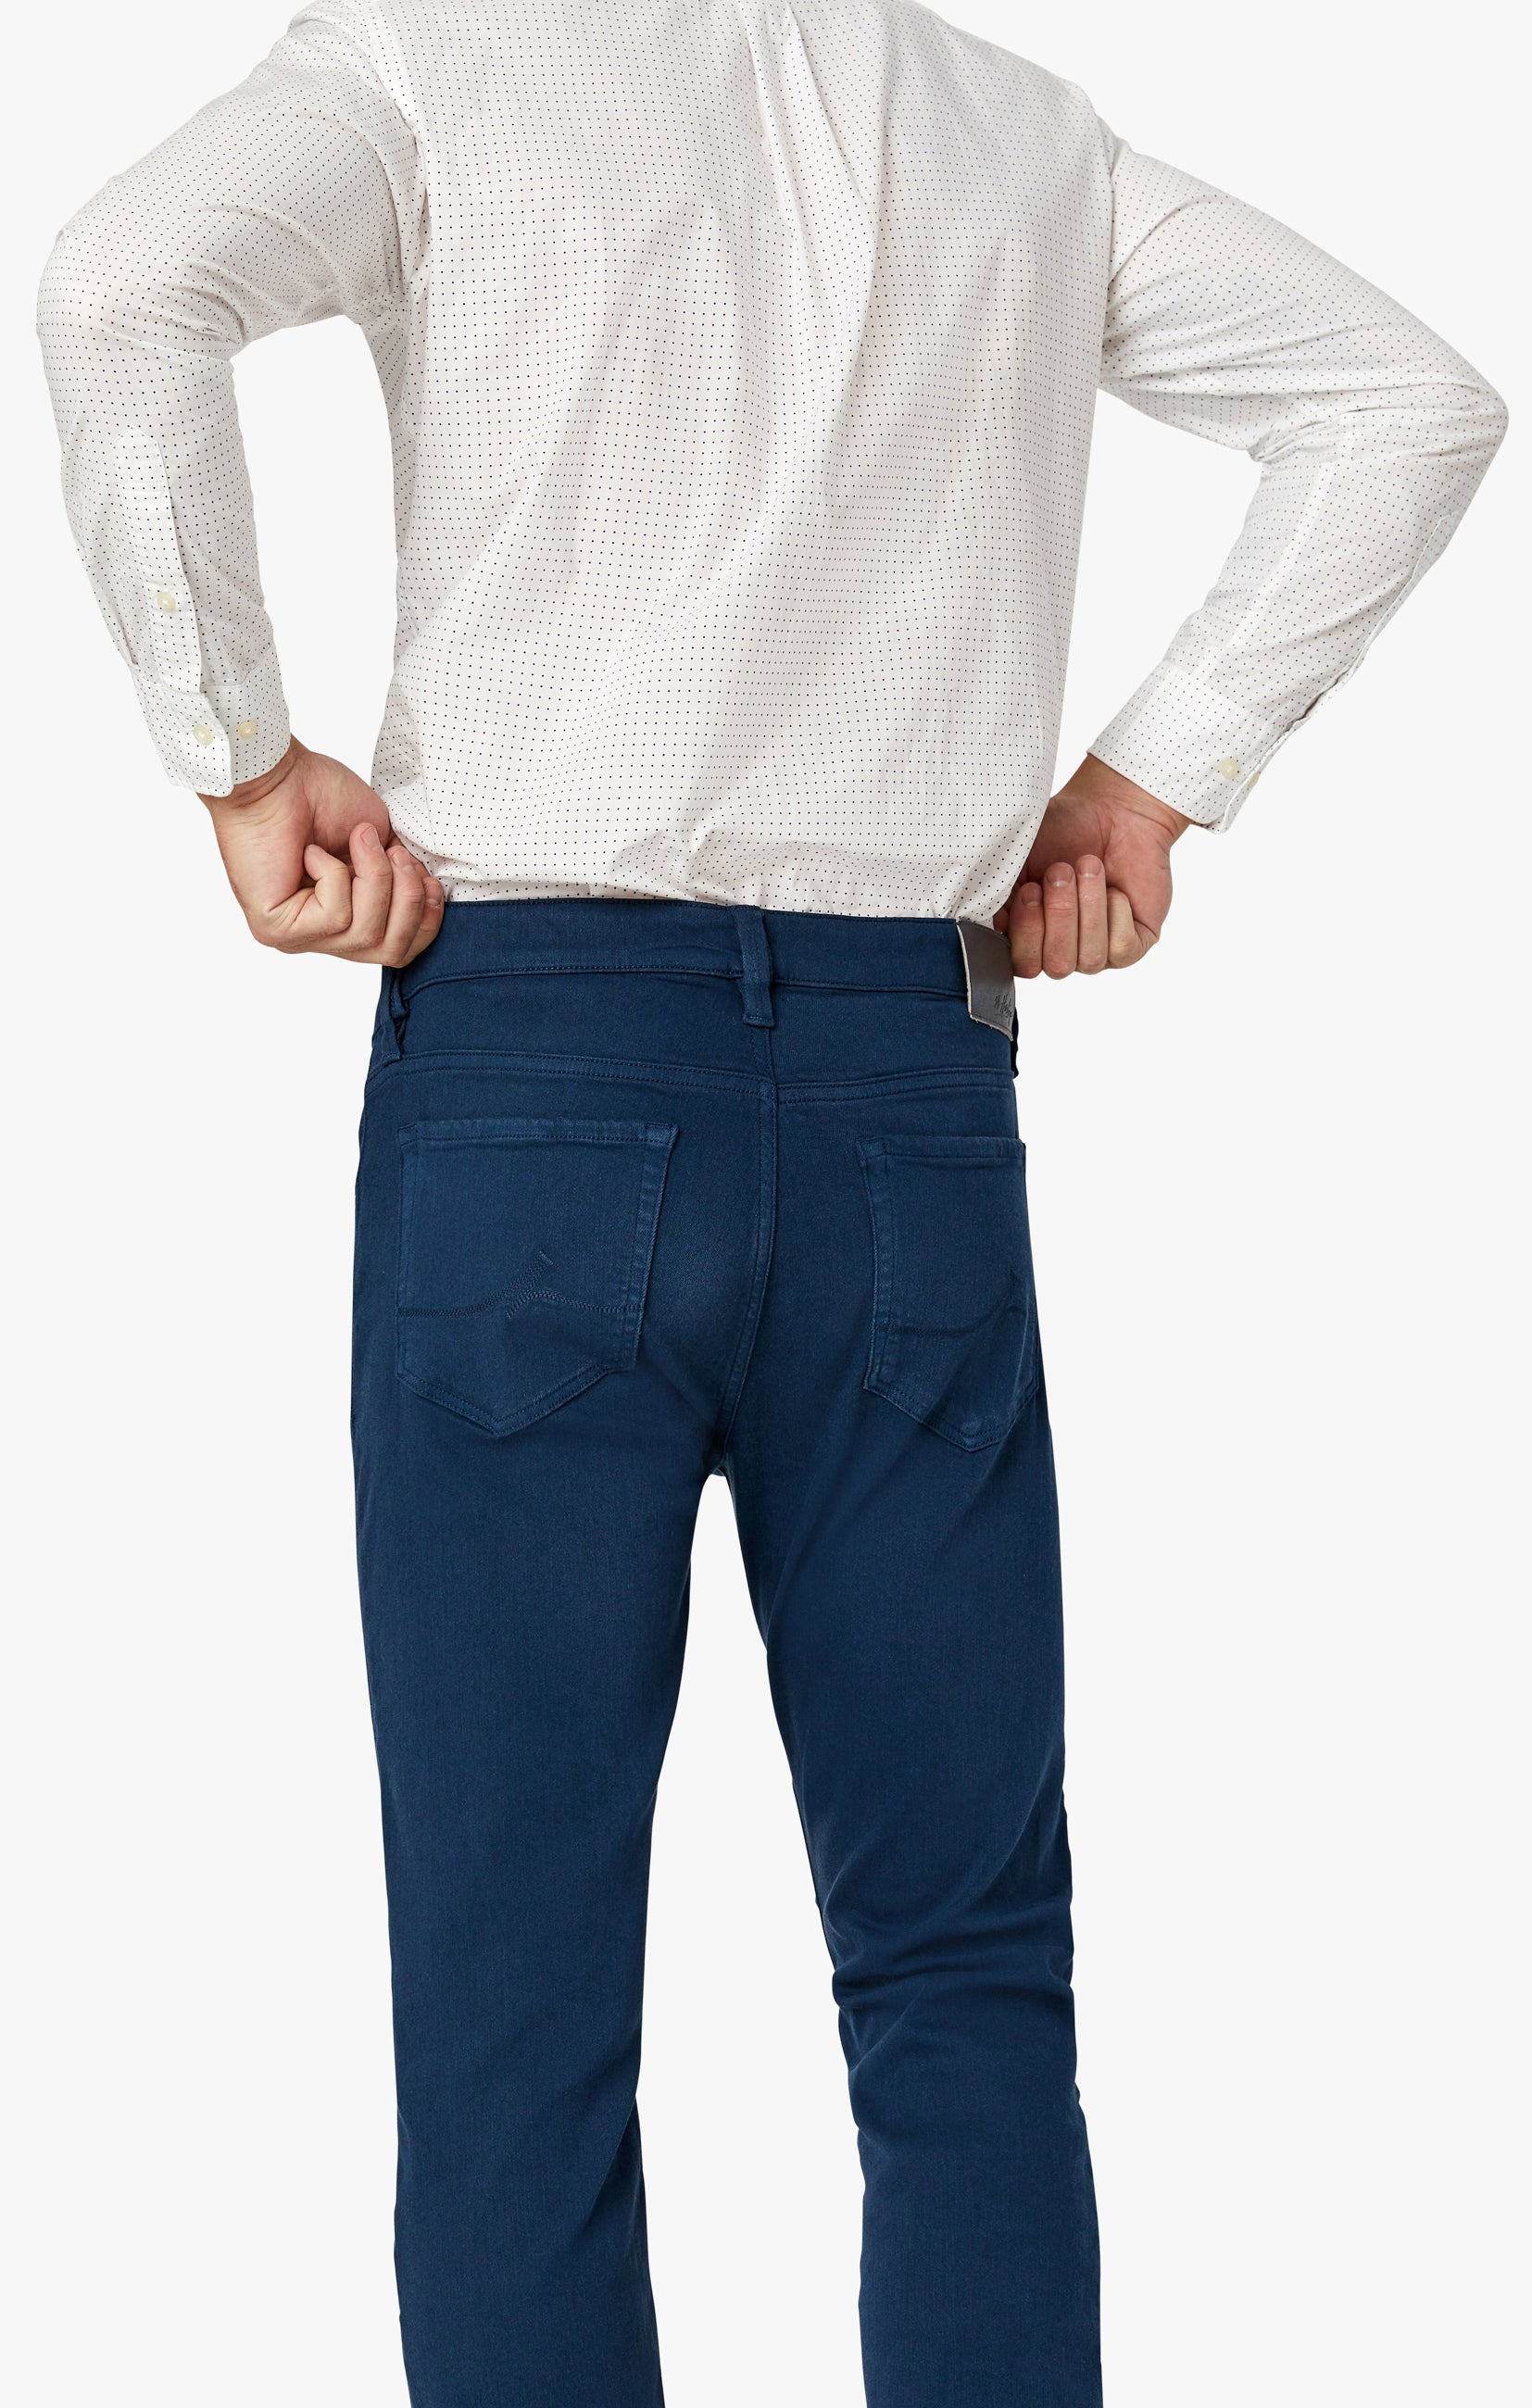 Courage Straight Leg Pants In Petrol Comfort Image 7